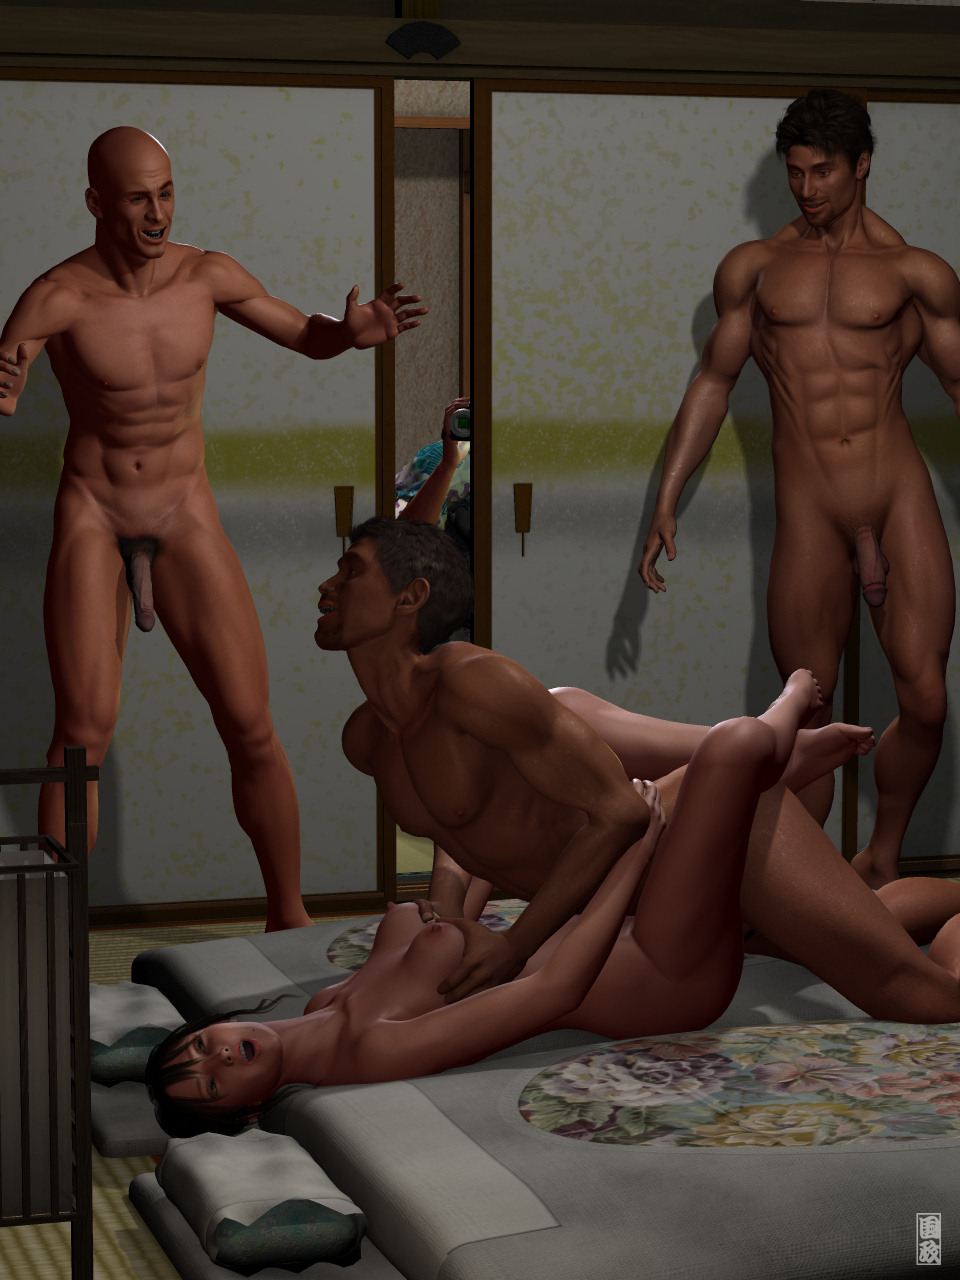 Anime 3D Porn Galleries 3d sex collection   free hot nude porn pic gallery